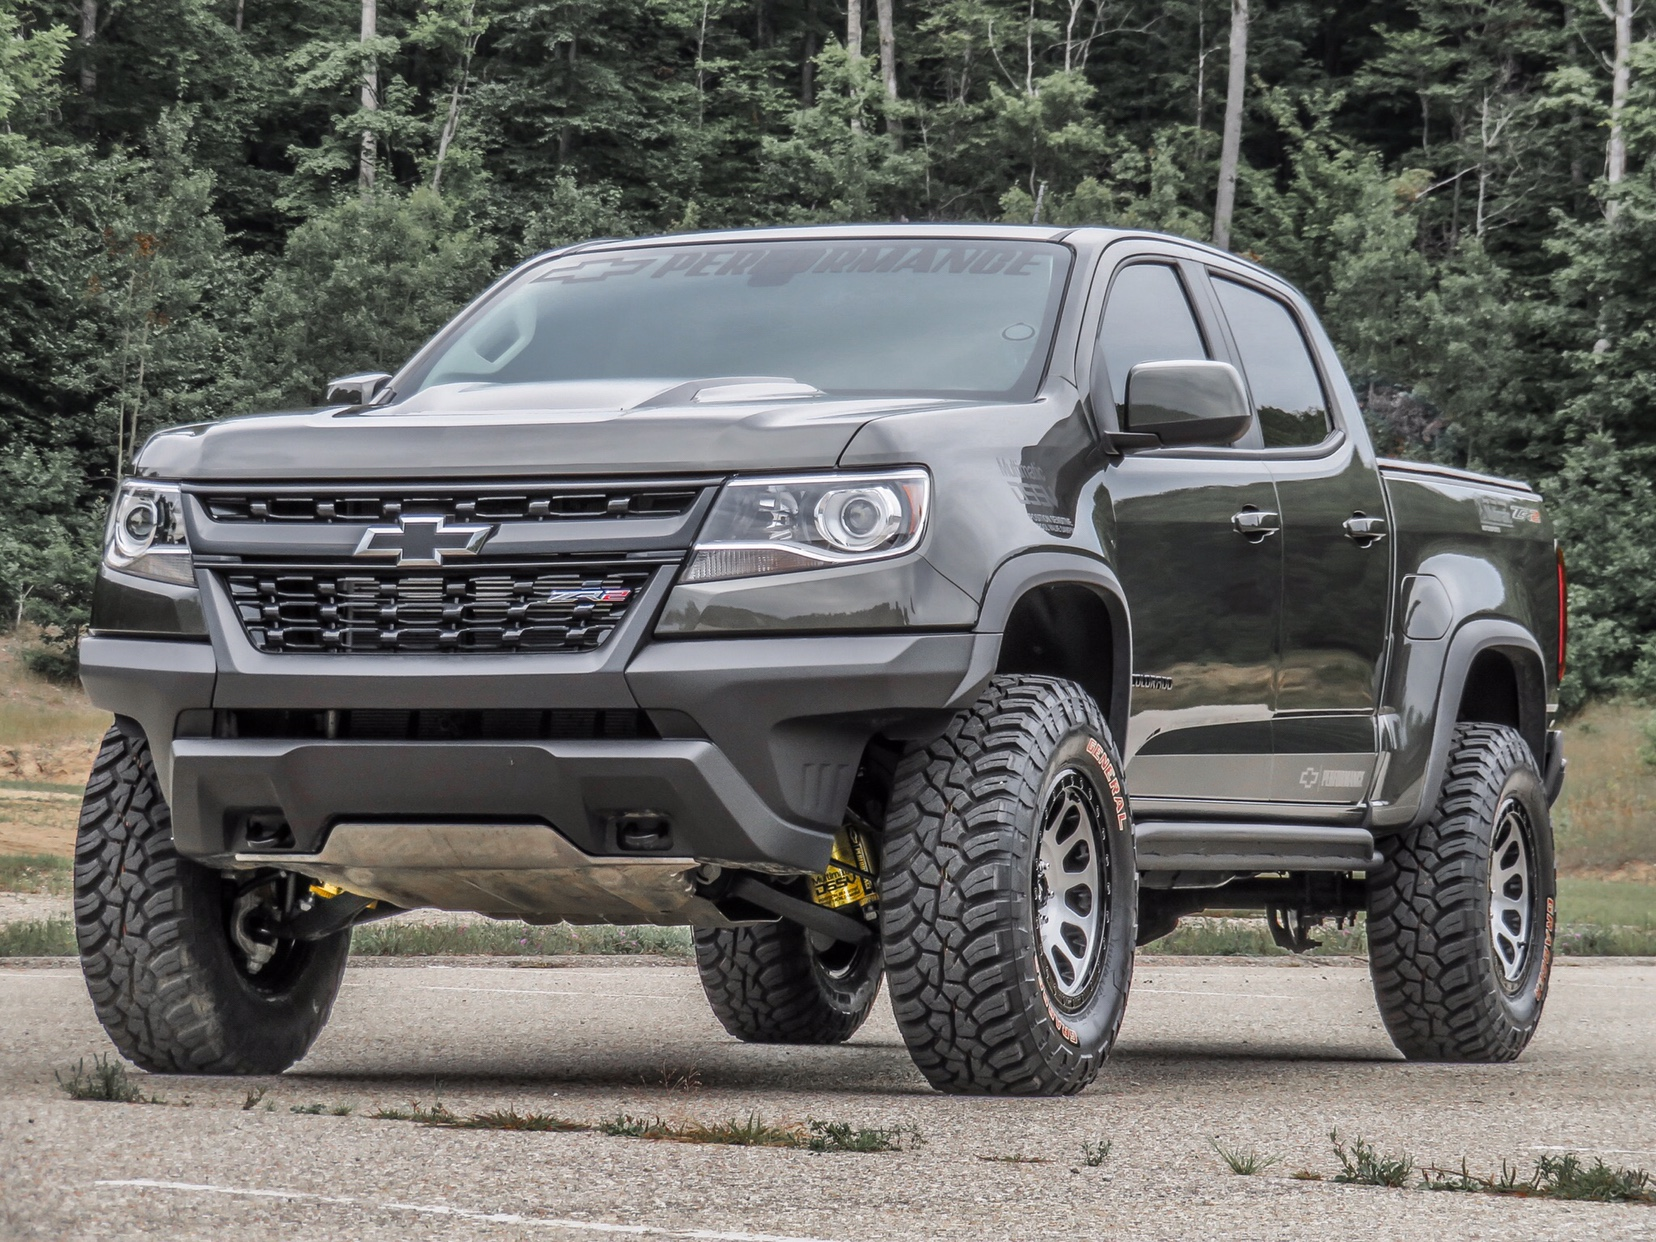 Lifted Gmc Canyon >> Need advice on front leveling kit. - Page 2 - Chevy Colorado & GMC Canyon